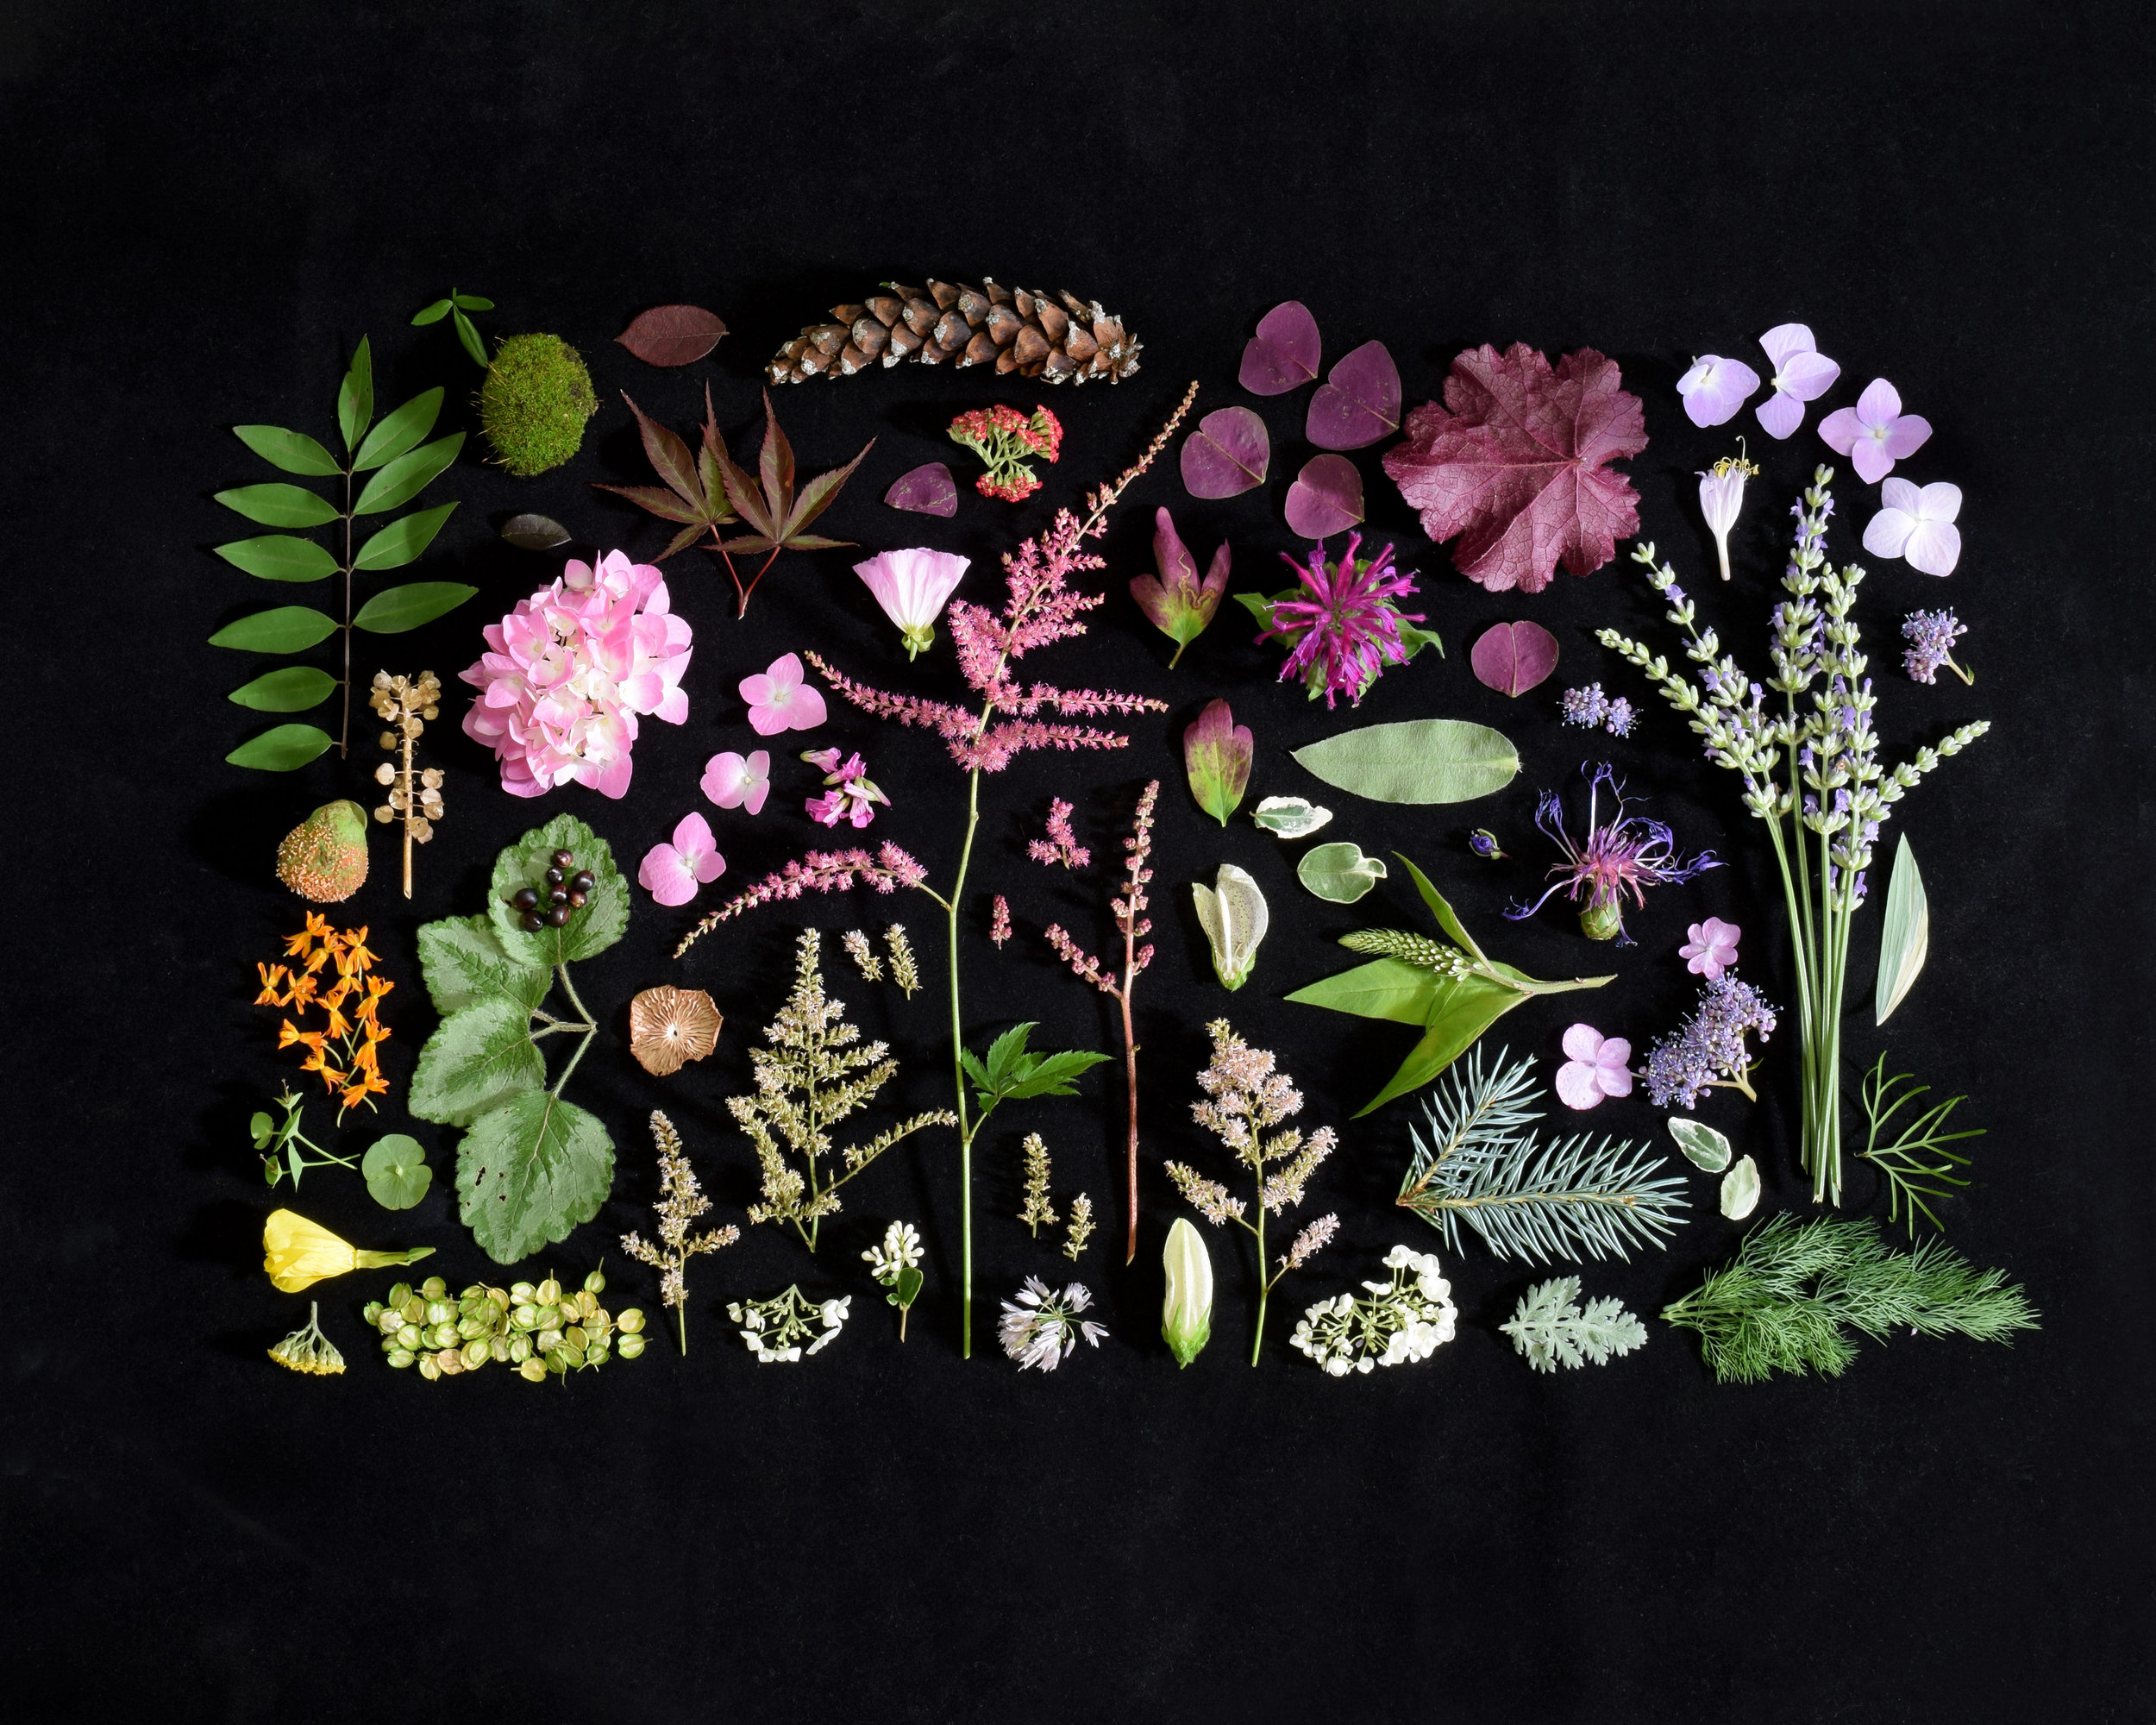 Lyndhurst Avenue (Summer) - Beautiful color flat-lay photograph of natural objects collected from a family's beloved garden on Lyndhurst Drive.